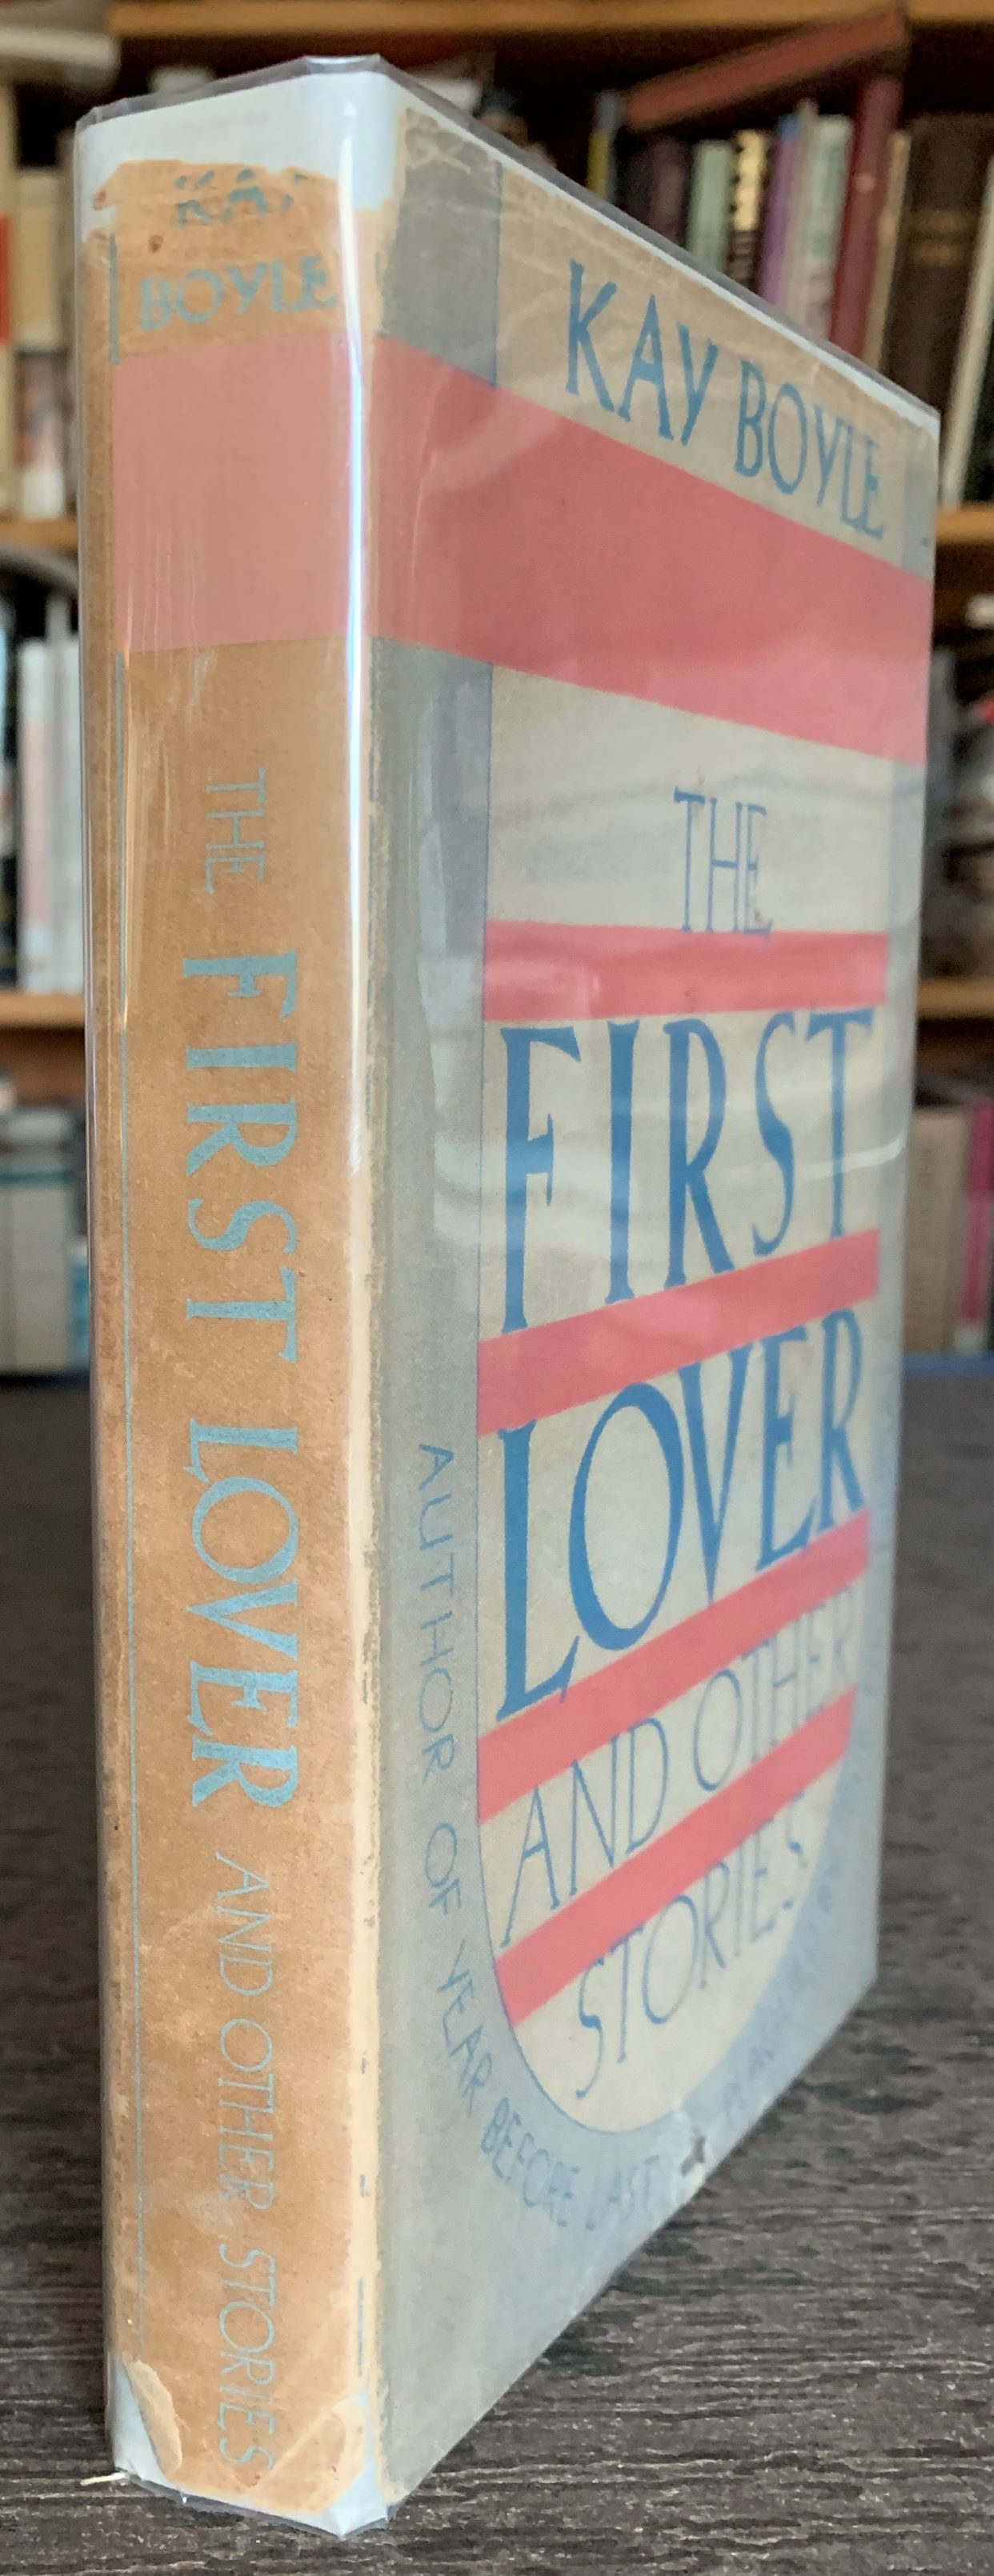 Image for The First Lover and Other Stories.